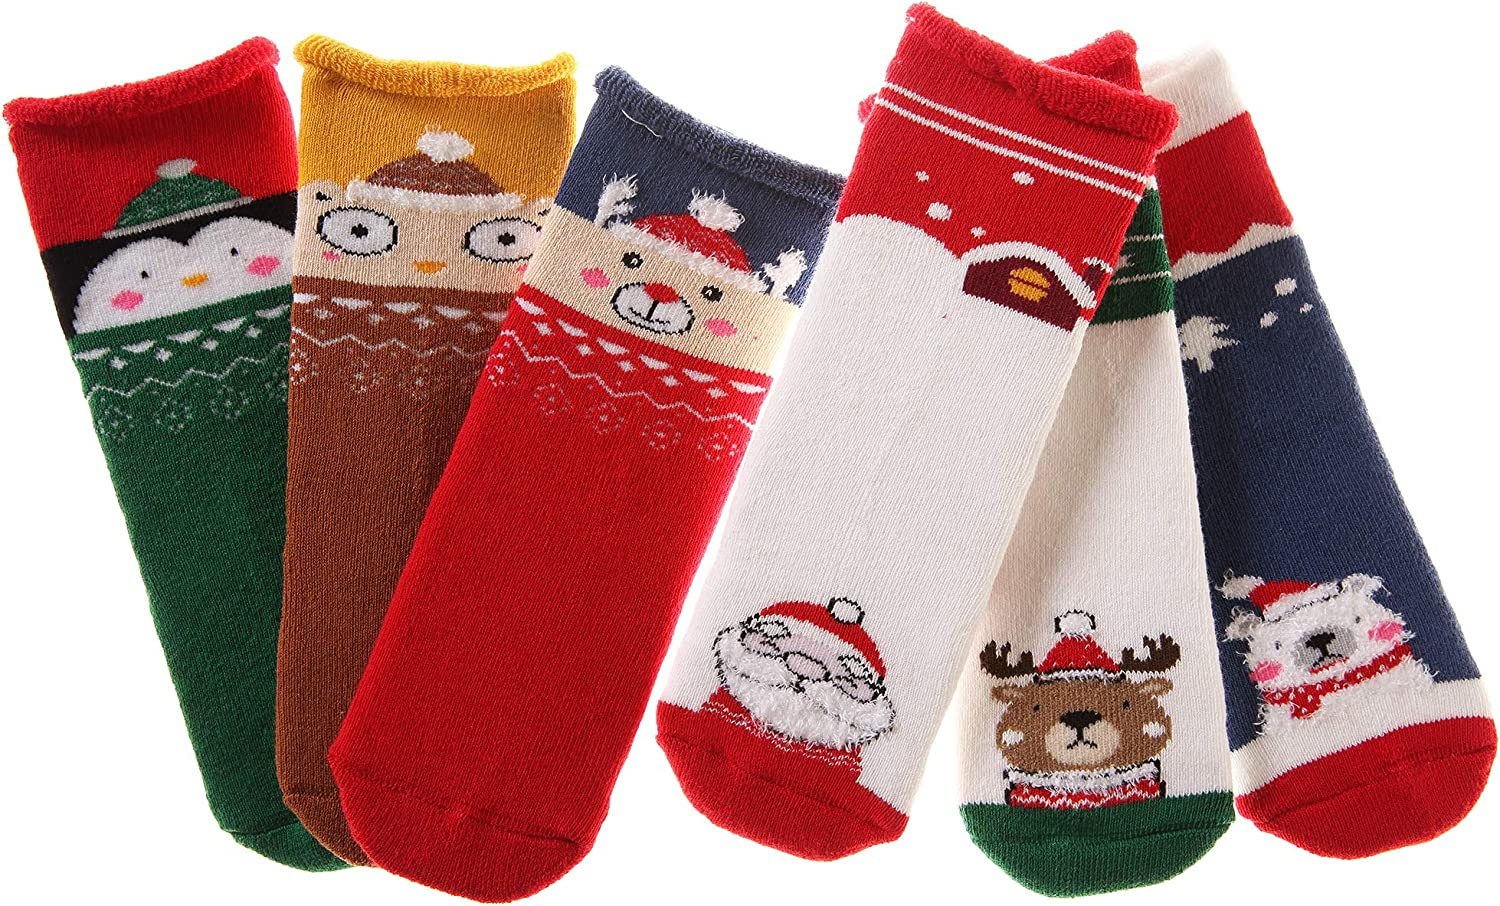 Eocom Christmas Kids Socks Baby Cotton Thick Thermal Warm Holiday Crew Child Girls Boy Toddler Socks 6 Pairs